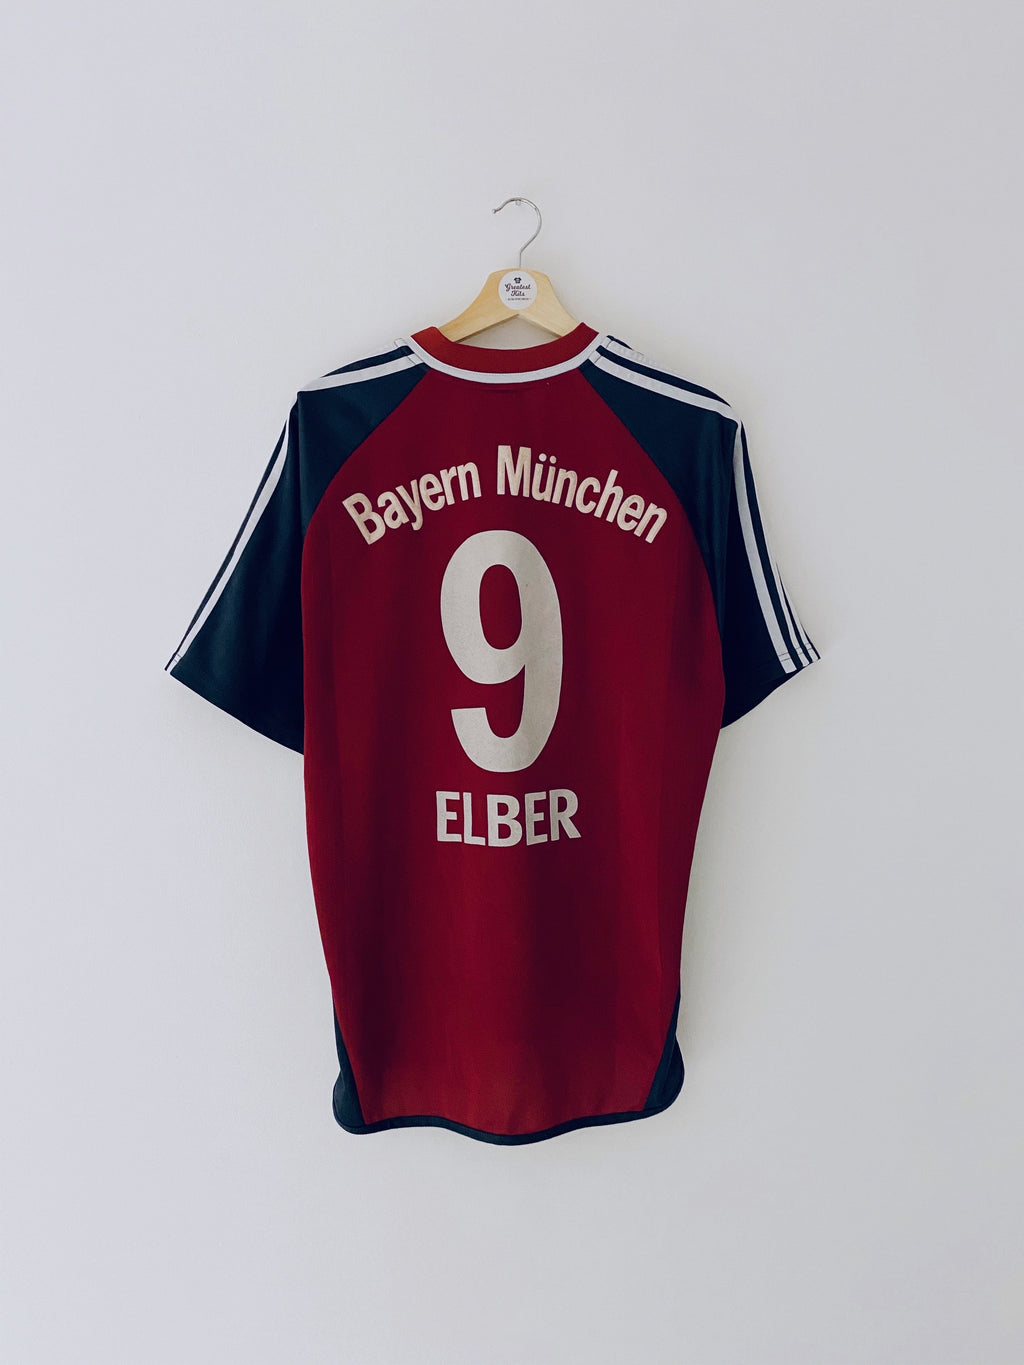 2001/02 Bayern Munich Home Shirt Elber #9 (M) 6.5/10